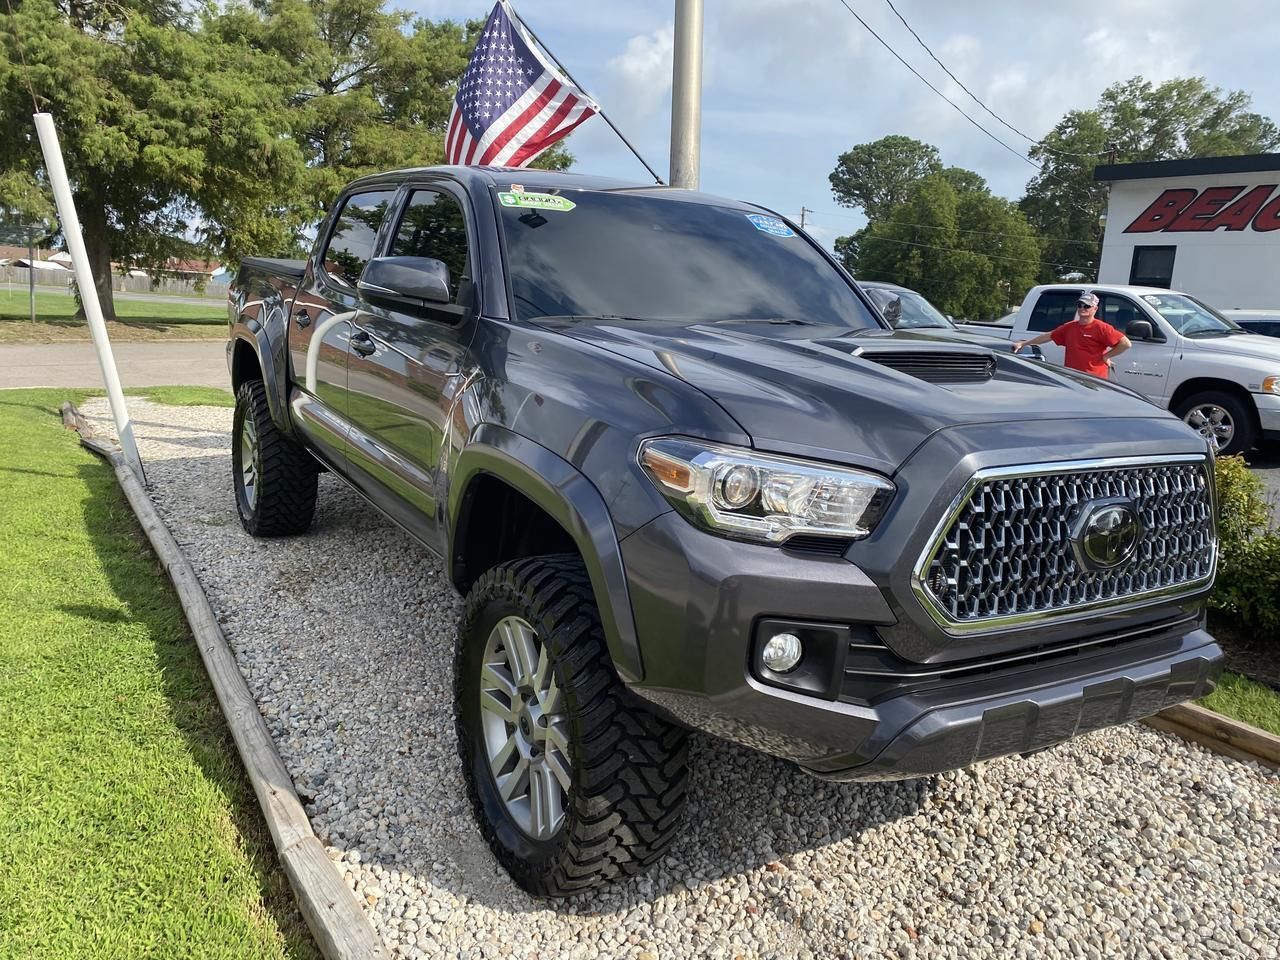 2018 TOYOTA TACOMA TRD SPORT DOUBLE CAB 4X4, WARRANTY, LIFTED, NAV, KEYLESS START, BLUETOOTH, LOW MILES, CLEAN CARFAX! Norfolk VA